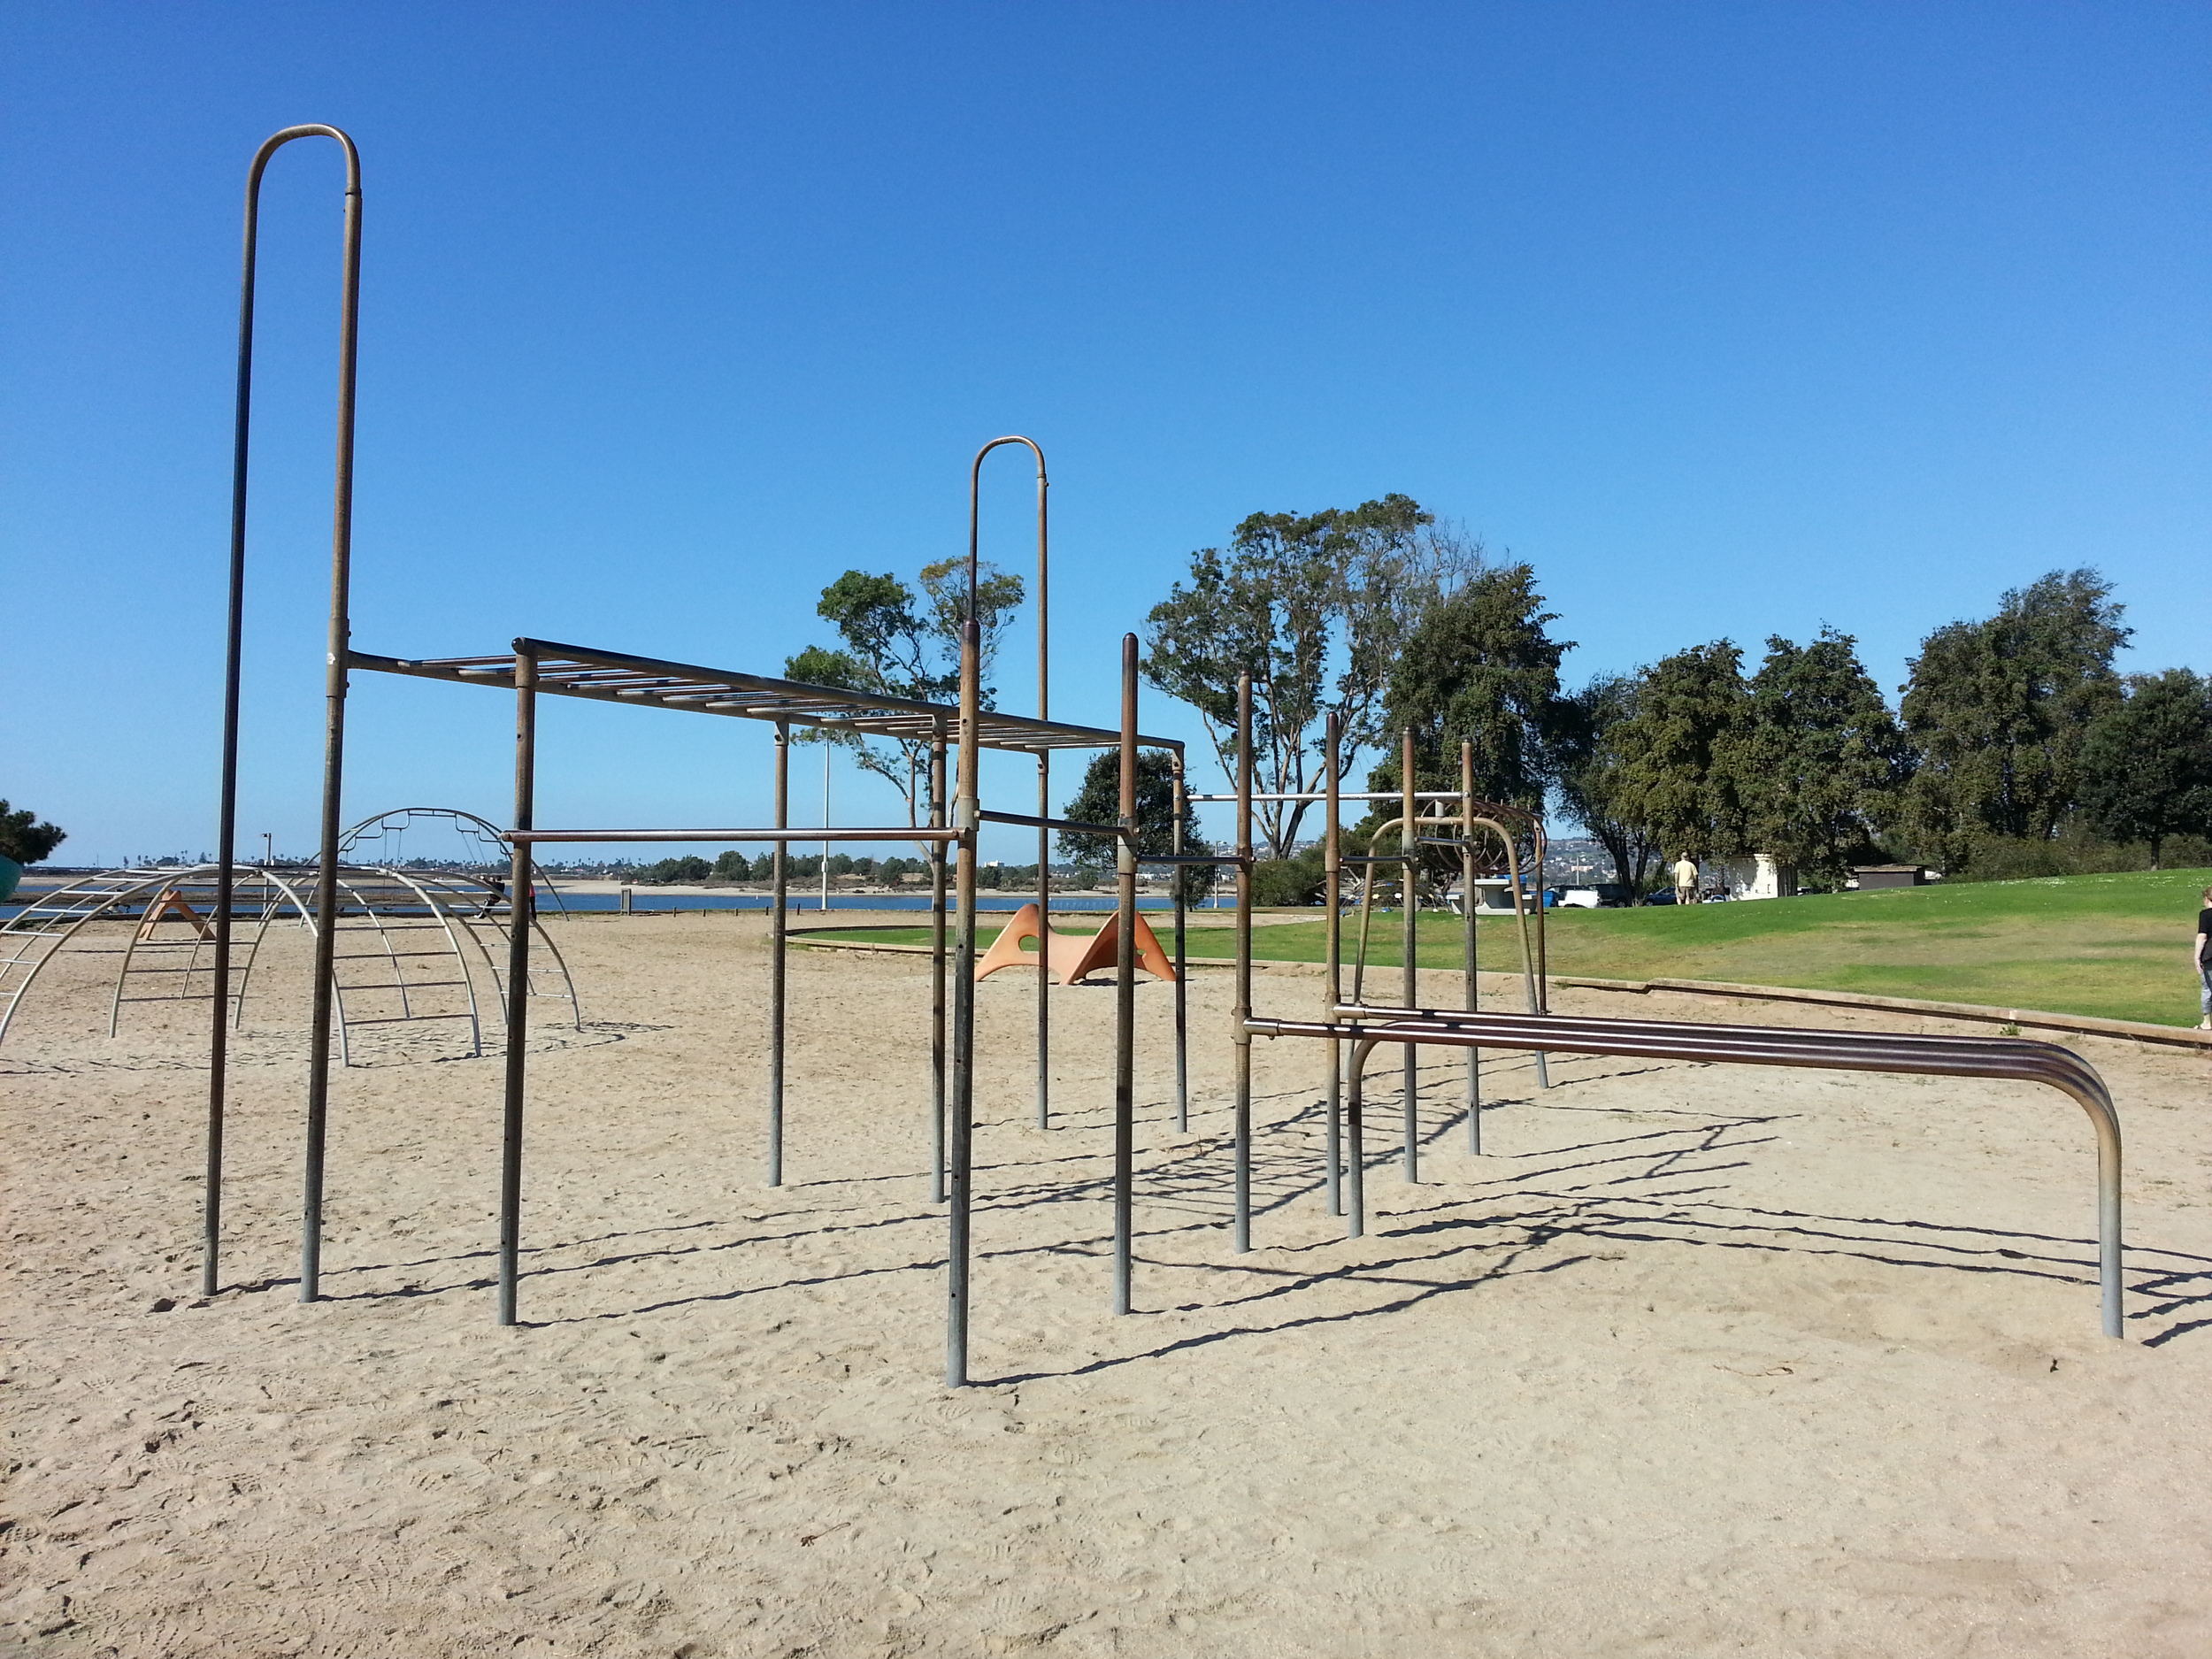 A great playground structure in Tecolote Shores Park by Mission Bay, San Diego, CA.